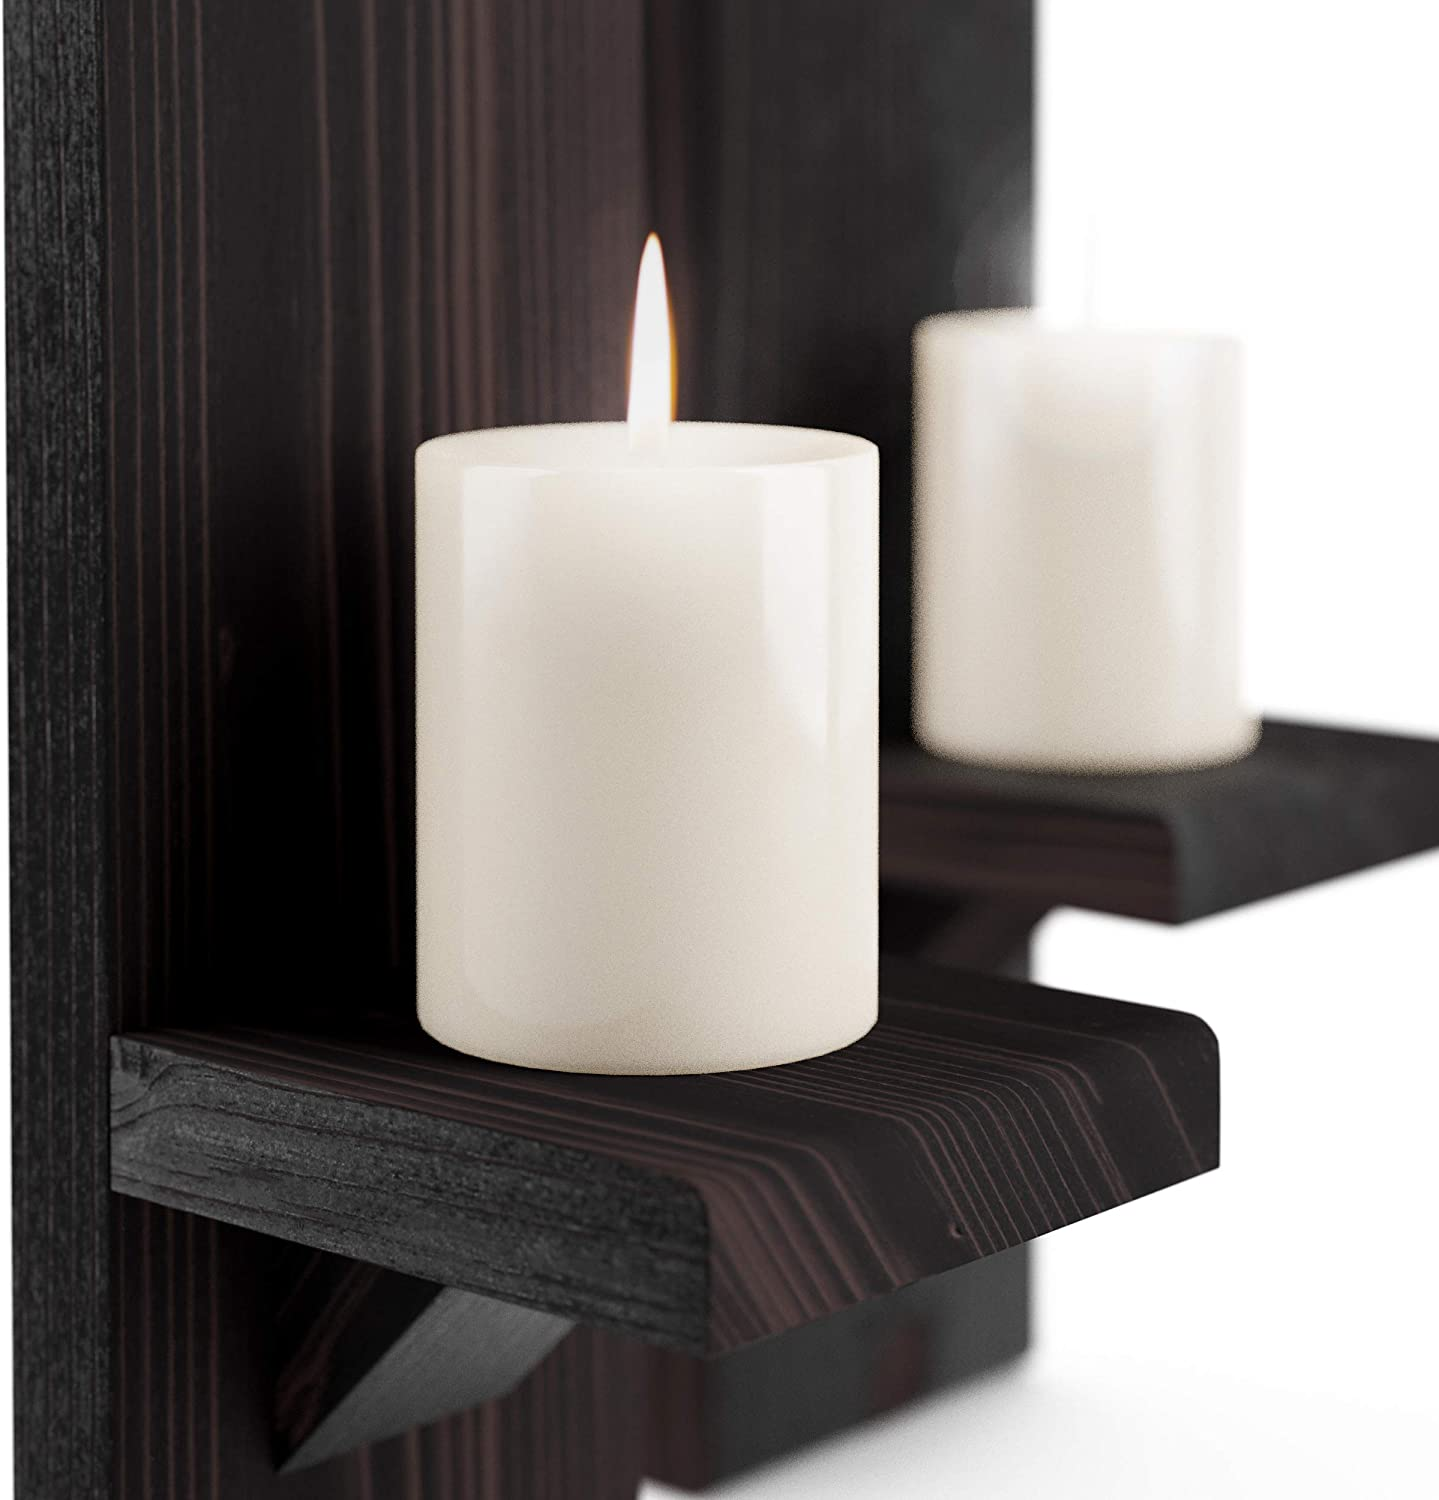 Wall-Mount Candleholders   Wood Candle Holders   Floating Shelves   Wallmounted Rustic Pillar Candle Sconce   Hanging Shelf   Farmhouse Wall Decor   Large Wooden Handmade Sconces: Kitchen & Dining